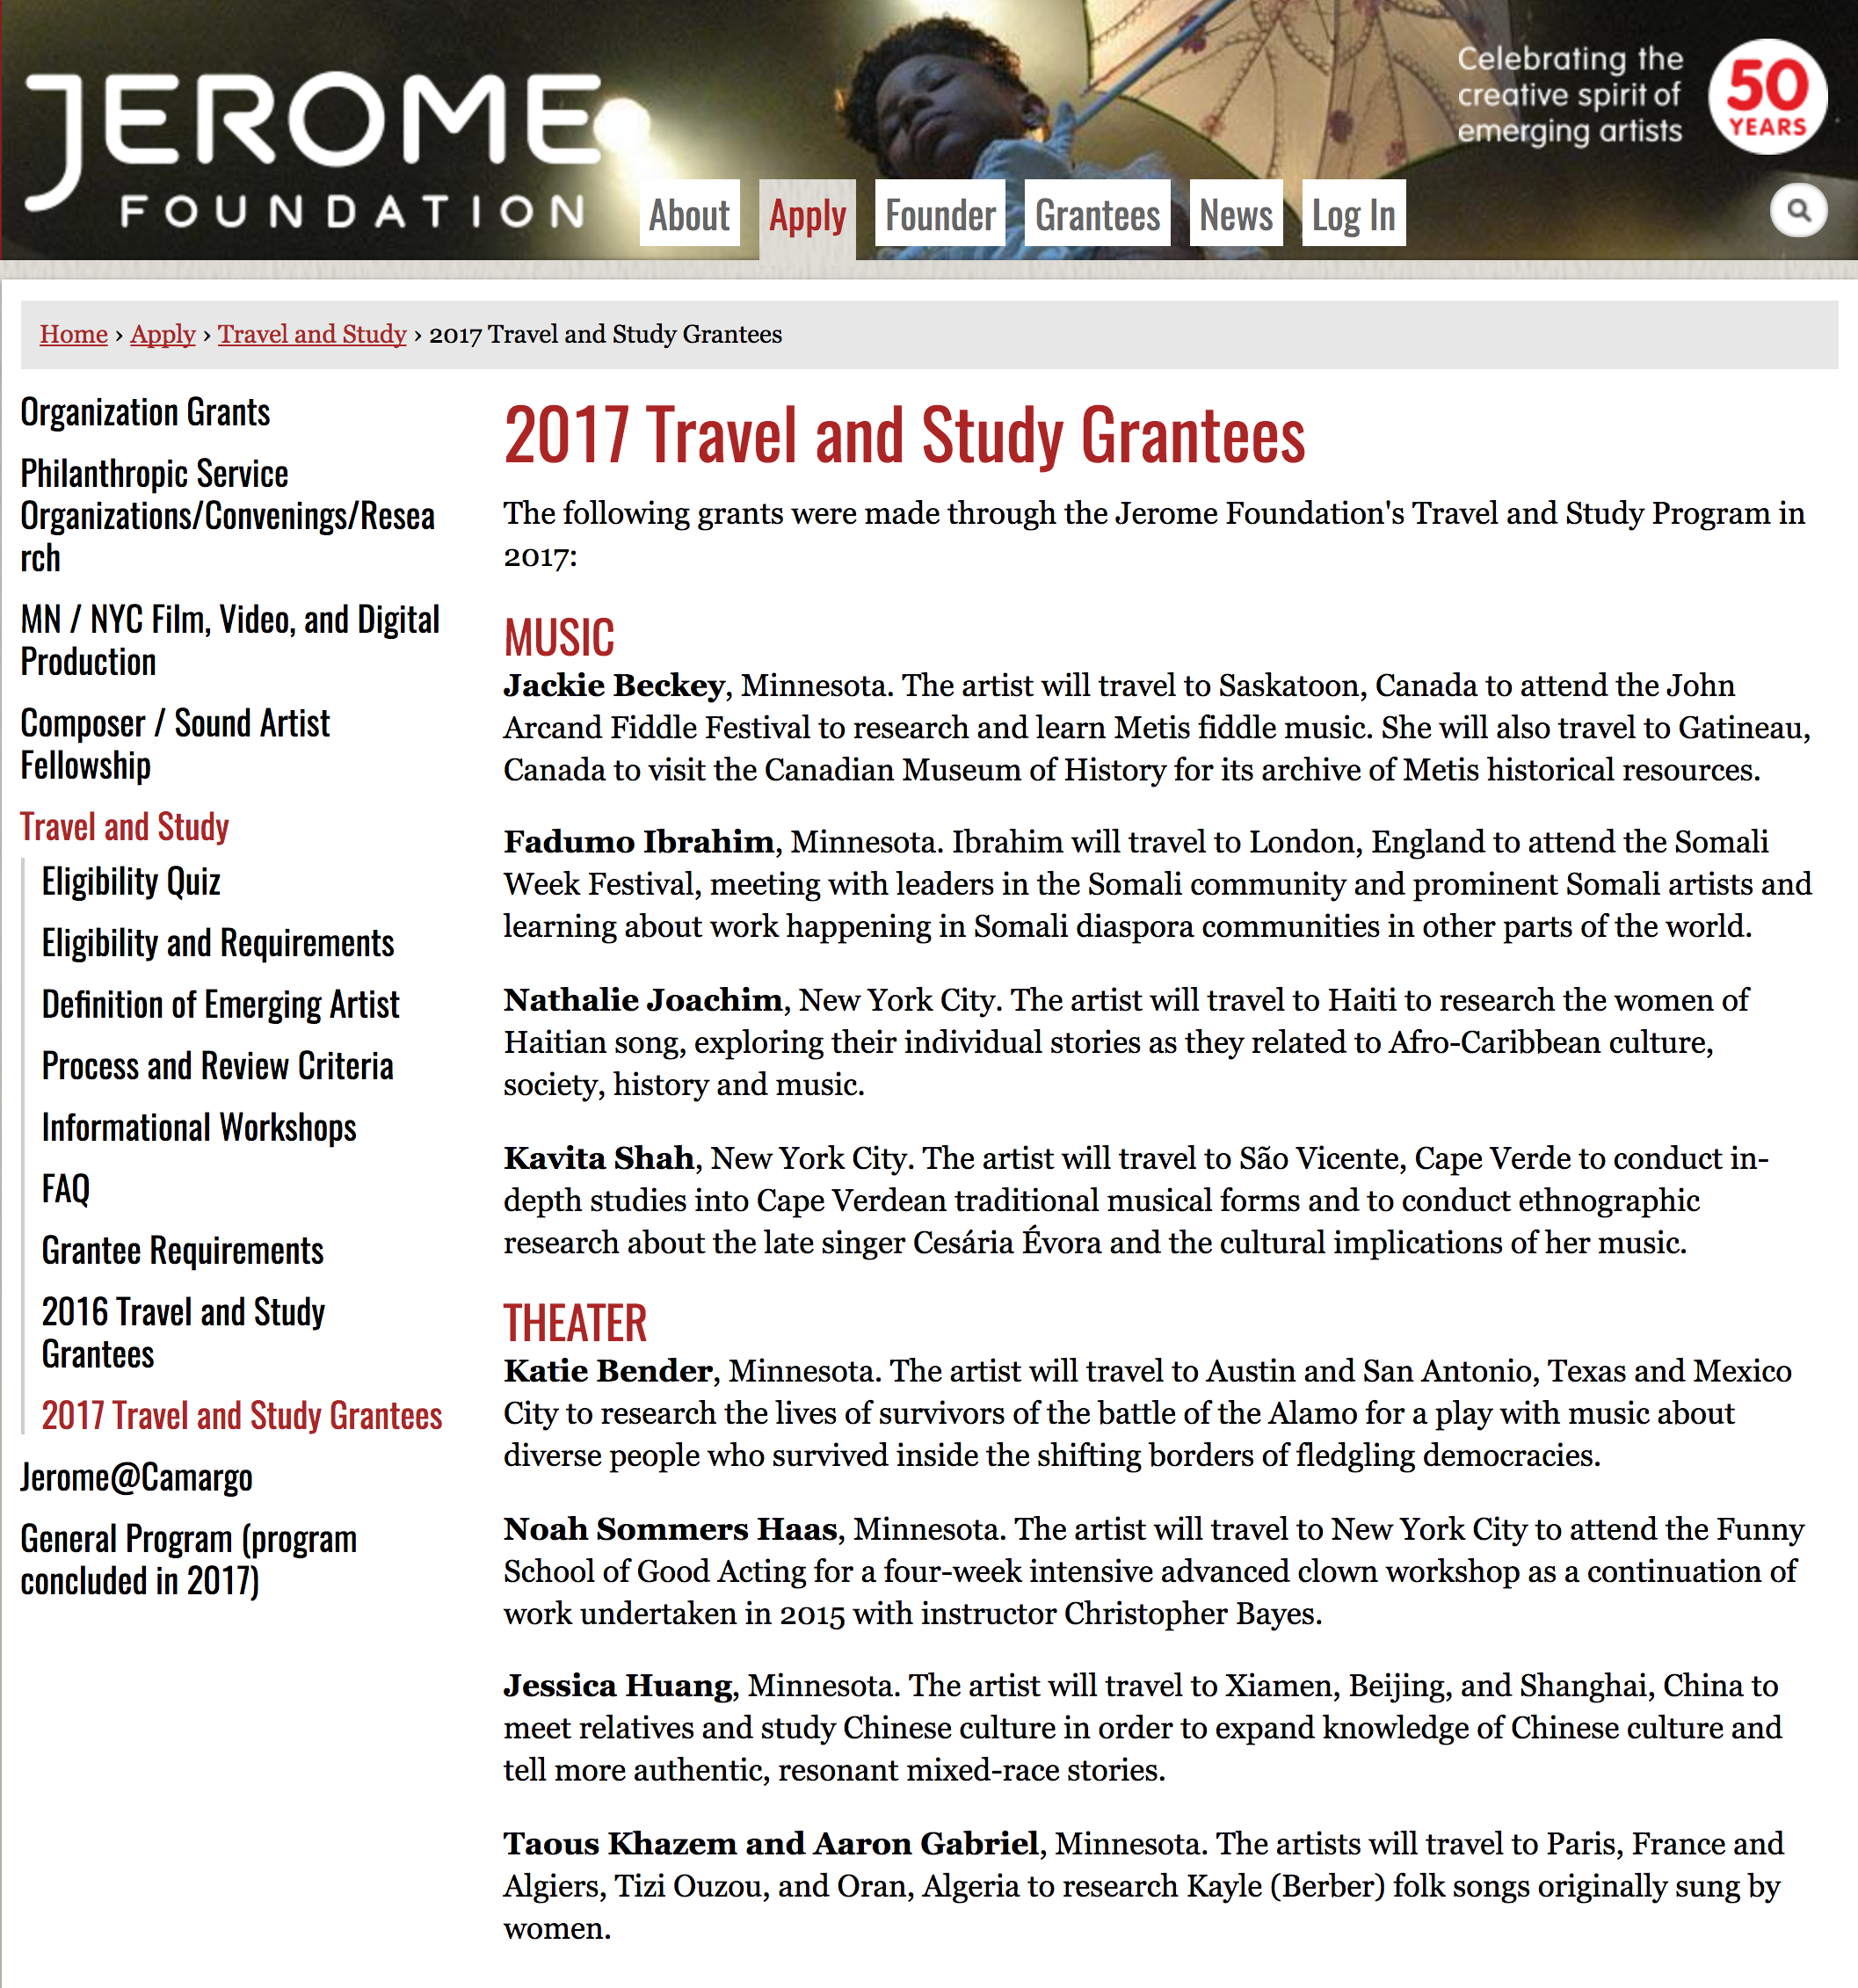 Noel Anderson selected as one of the Jerome Foundation's Travel and Study Grantees for 2017.